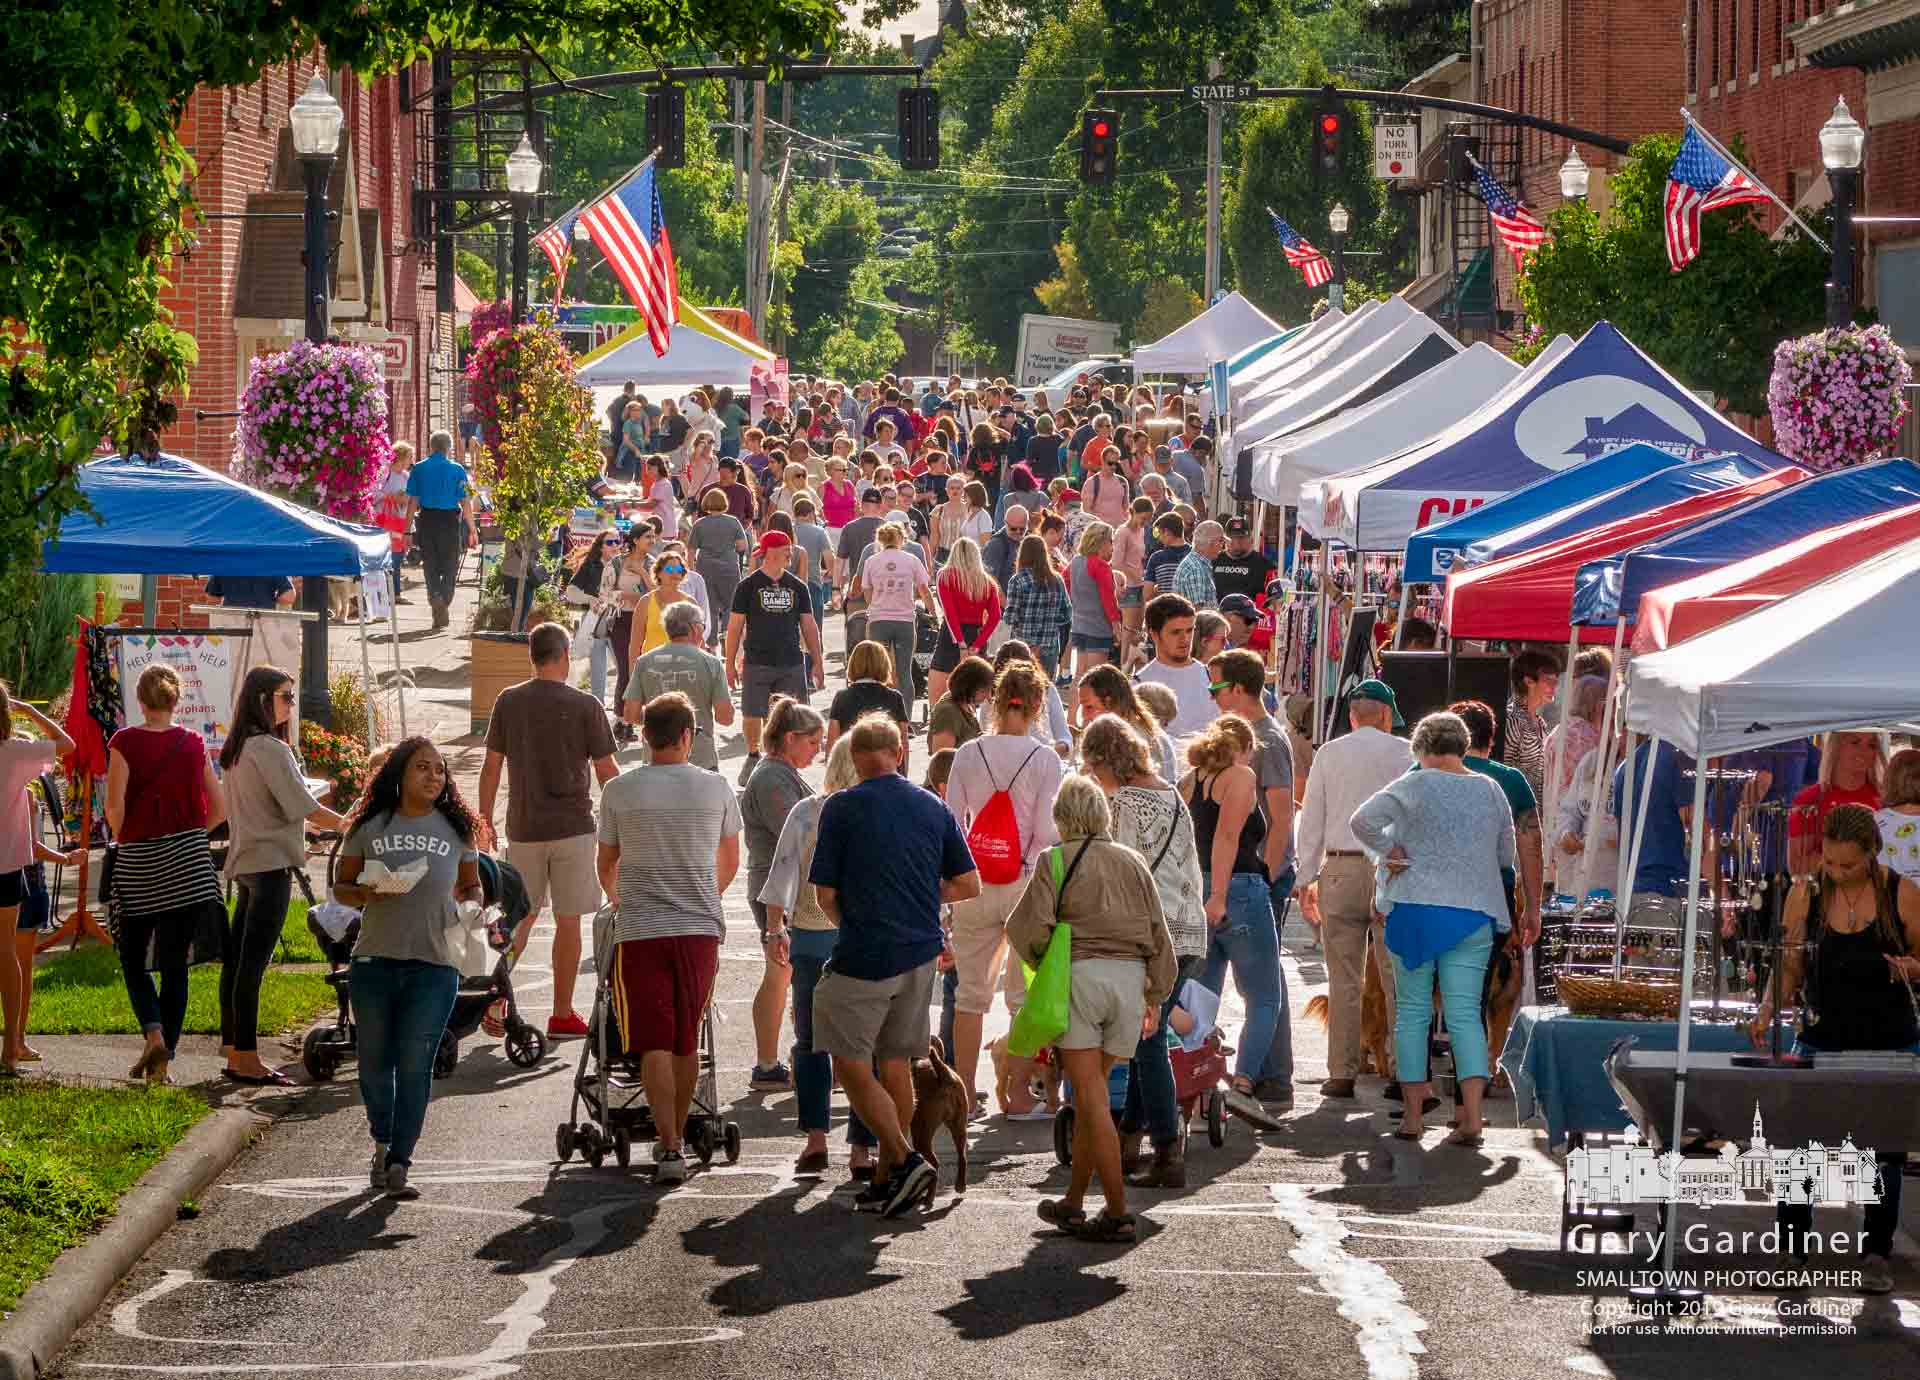 The Fourth Friday crowd works its way along East College past vendors and shops open on a cool and sunny day in late August. My Final Photo for Aug.23, 2019.